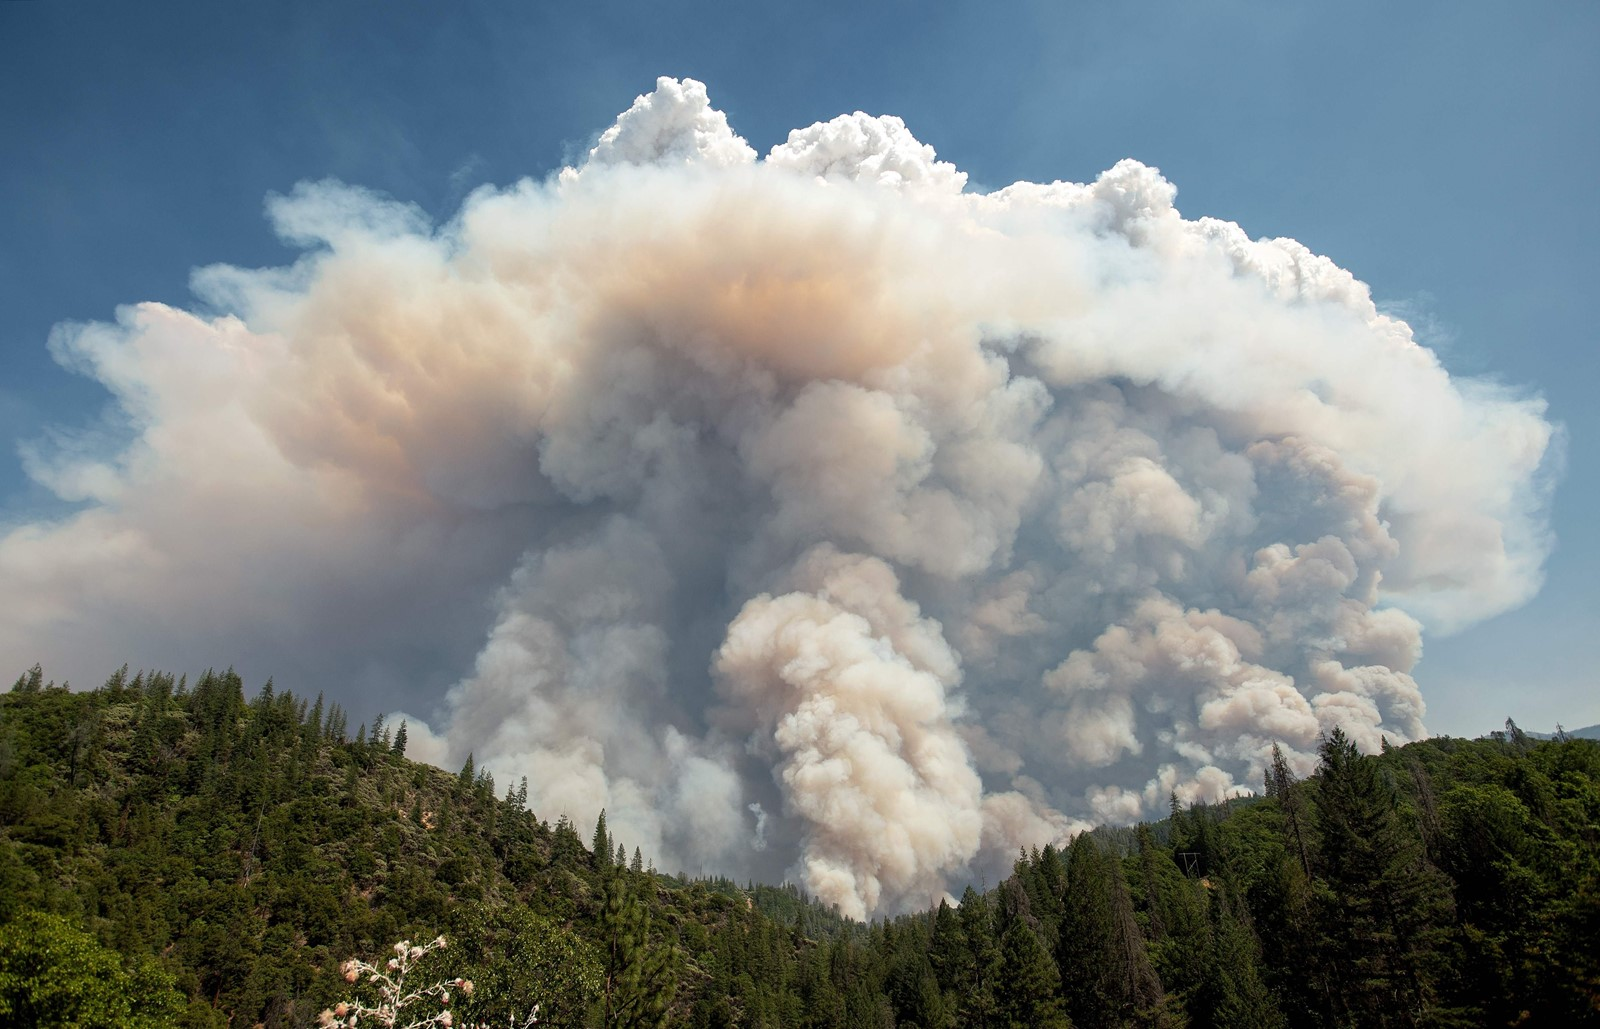 The state is having its worst wildfire year on record as warmer temperatures and extremely dry land help fires burn more intensely, climate experts say. — Photograph: Josh Edelson/Agence France-Presse/Getty Images.